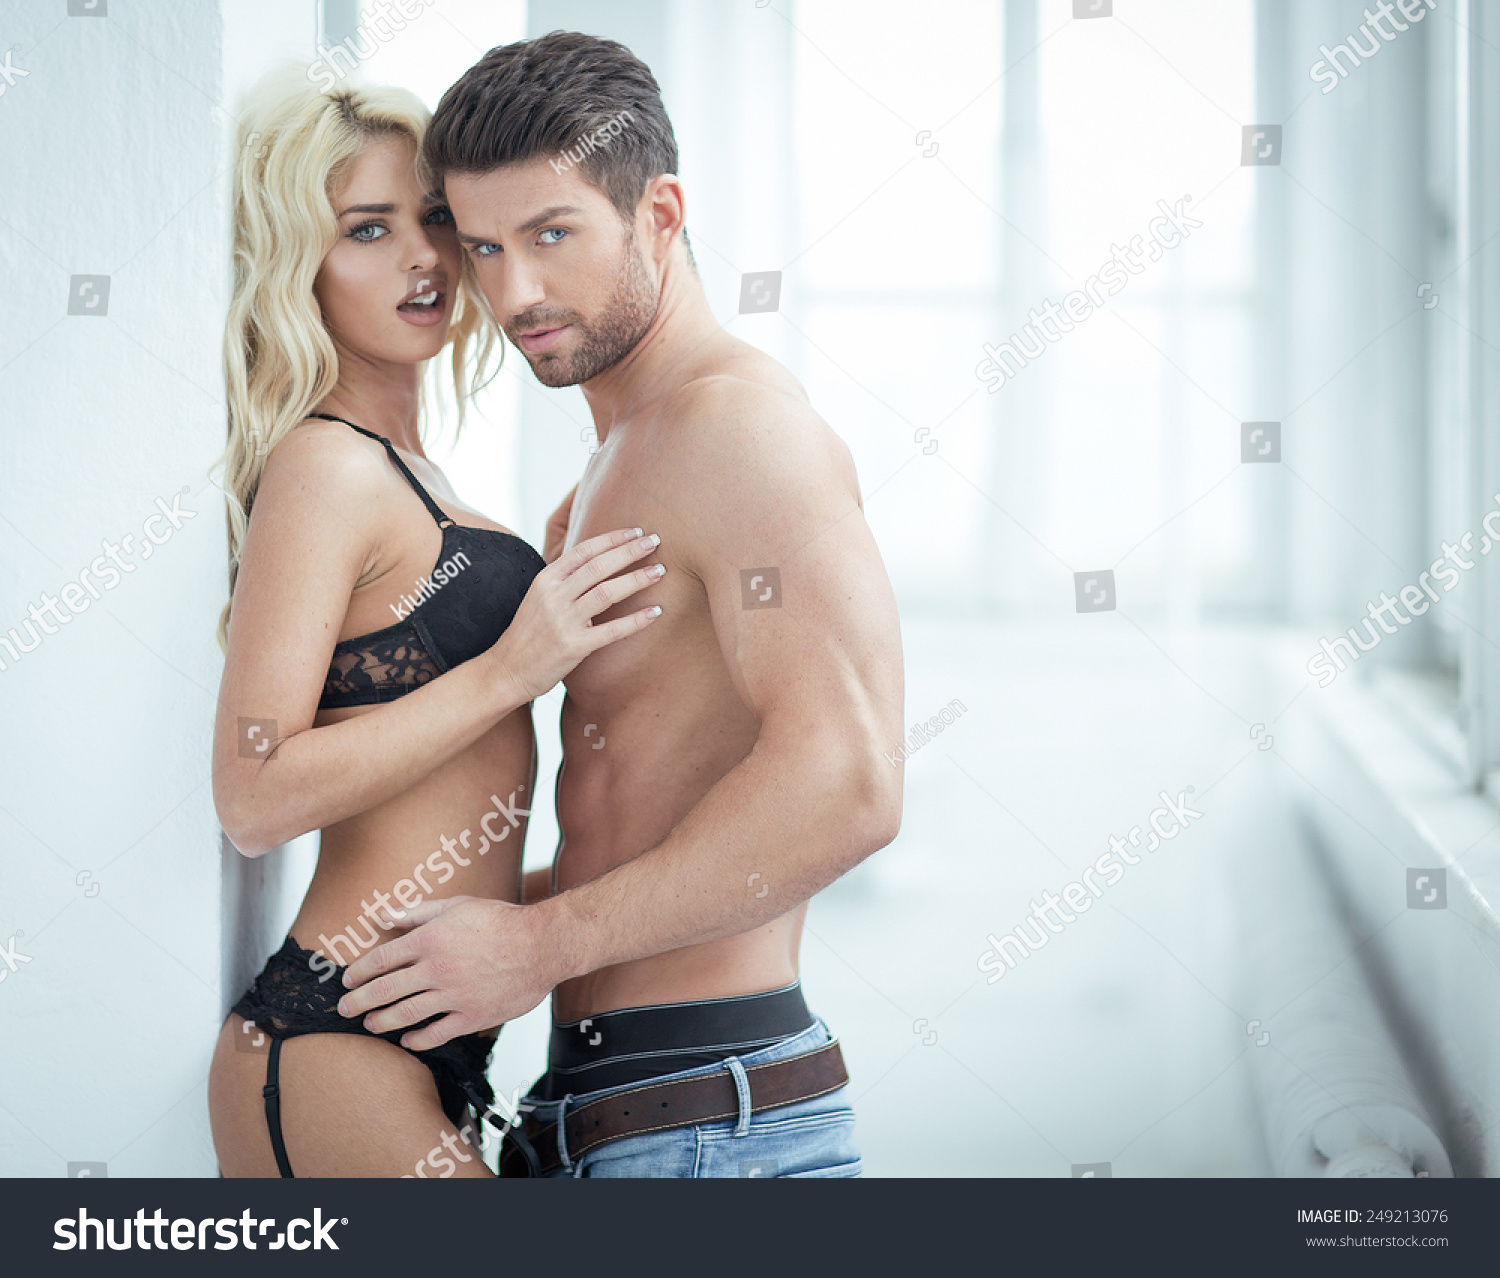 Would not pics of sexy couple for free right!